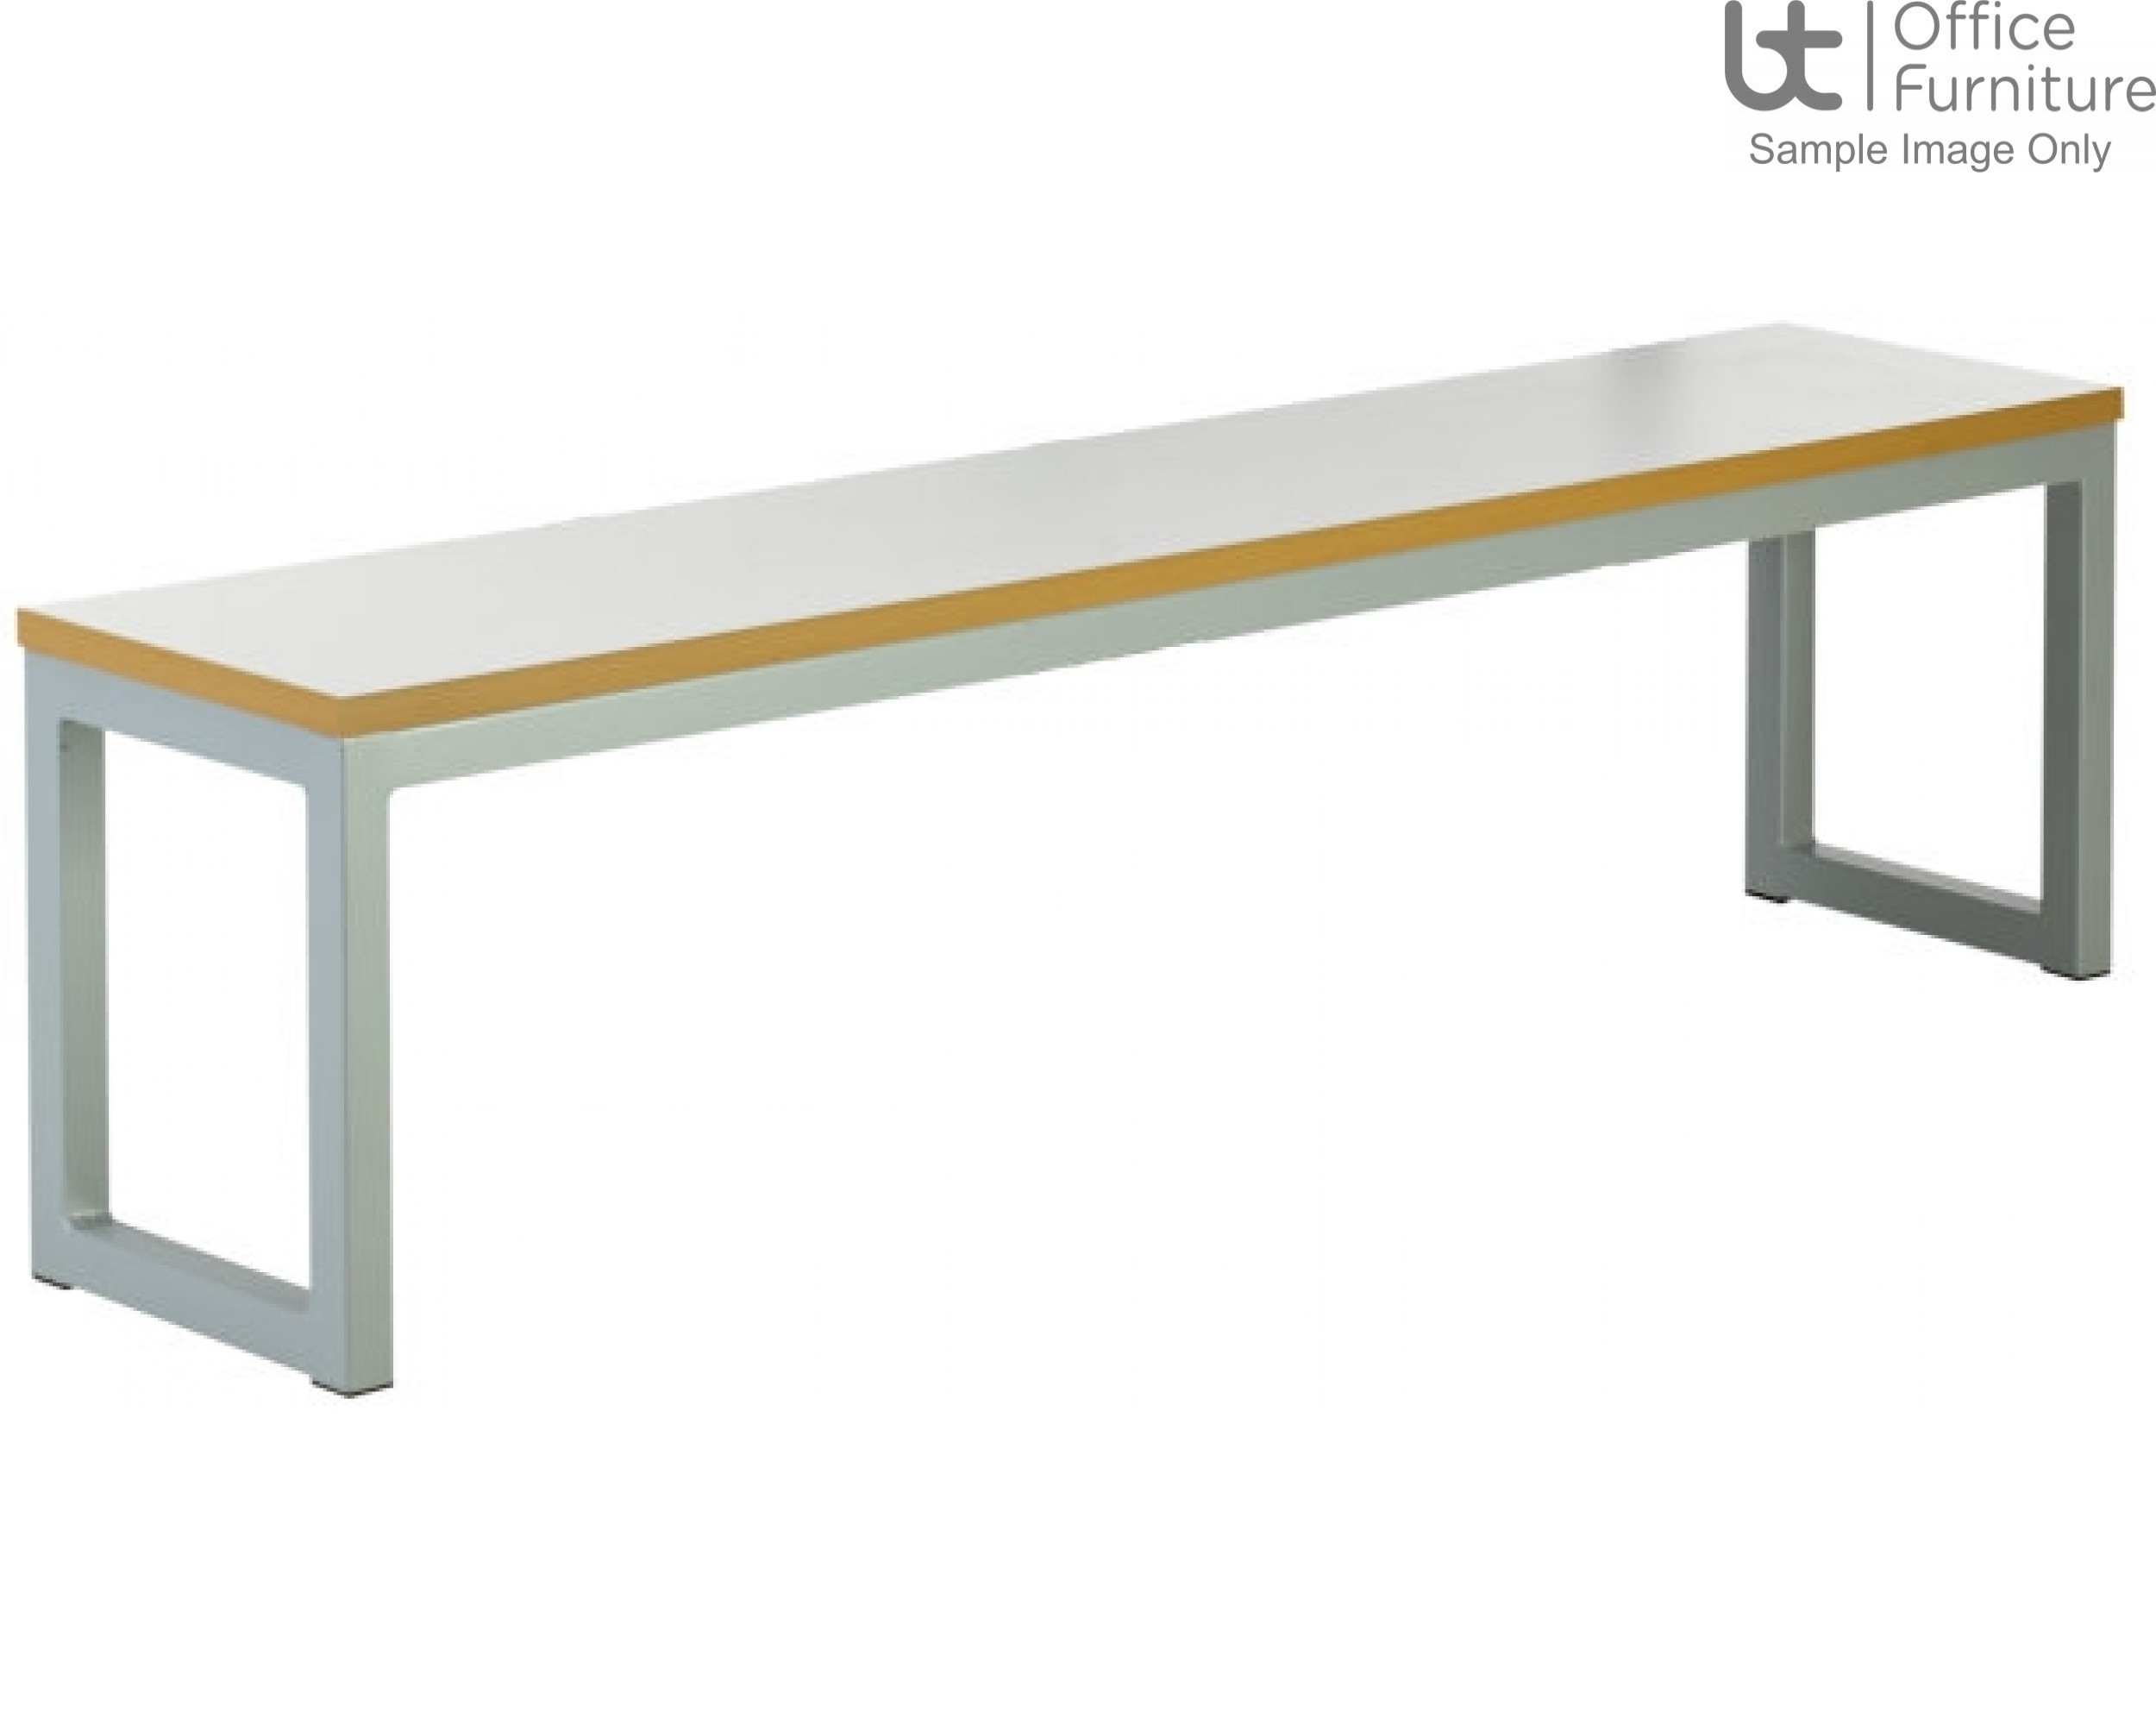 Urban 40/40 Robust 25mm Laminate Top School Bench Seat W1700mm (Std Frame Colours)